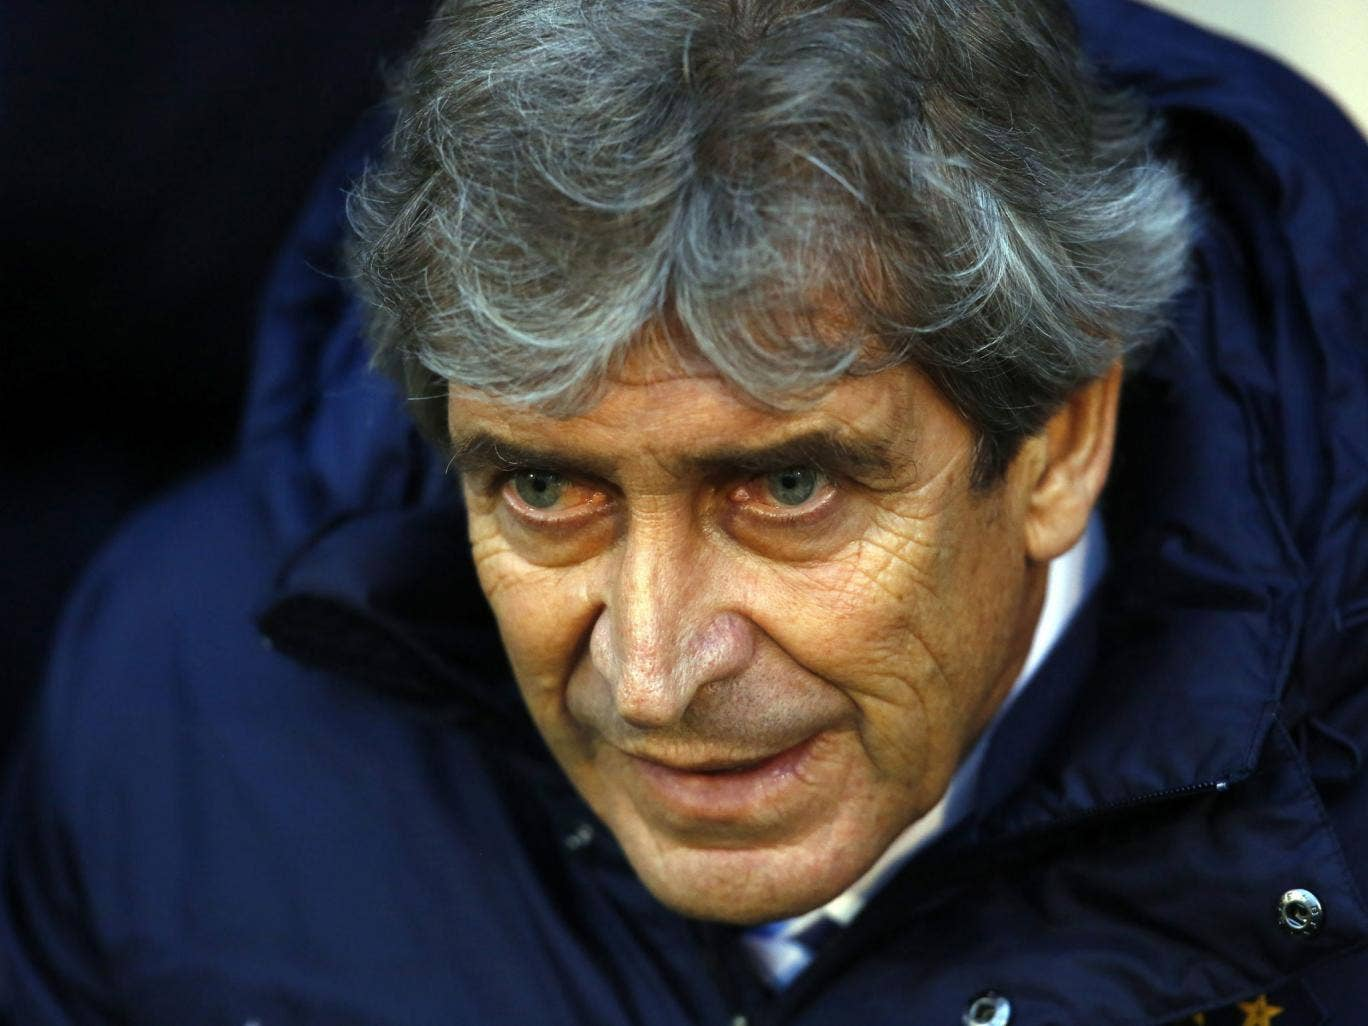 Under Pellegrini, Manchester City are on their way to surpass 100 goals scored this season